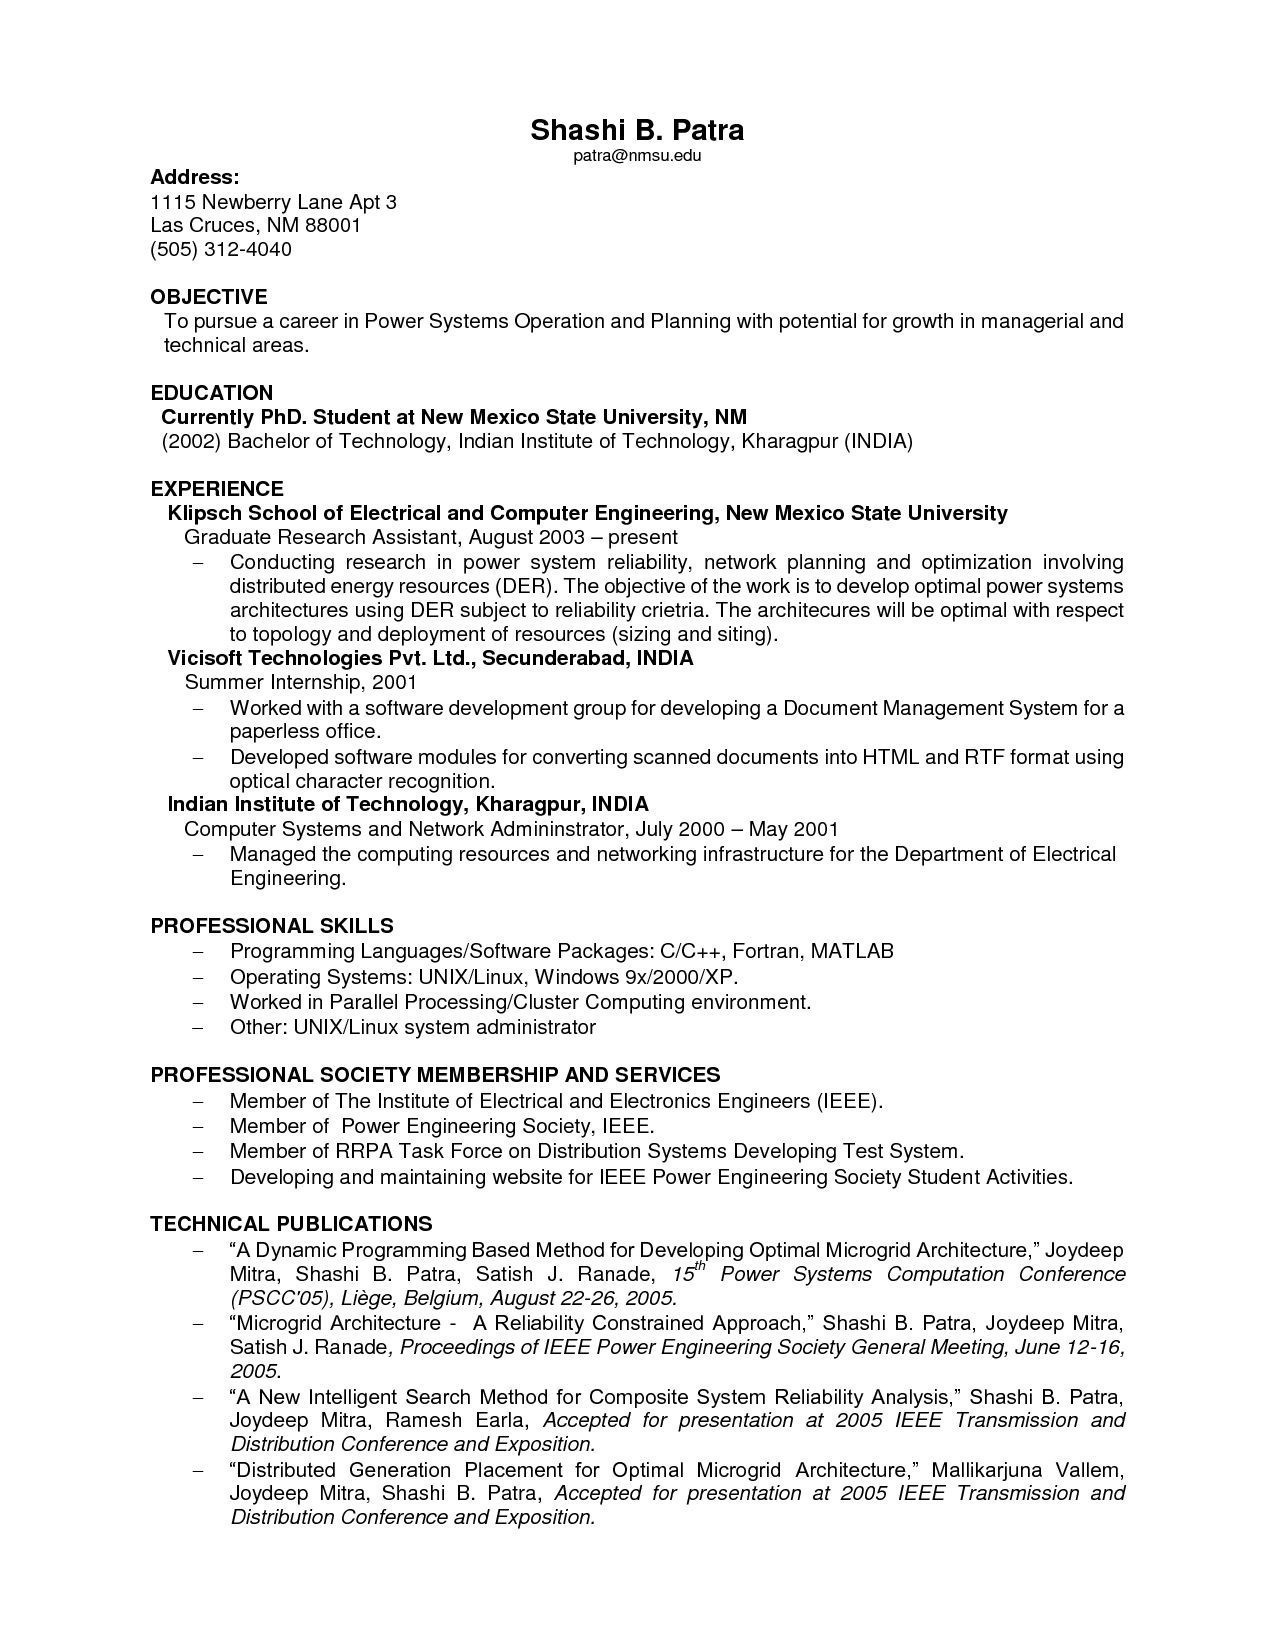 Resume for someone with No Experience - Resume Templates for Students with No Experience Valid Resume for No